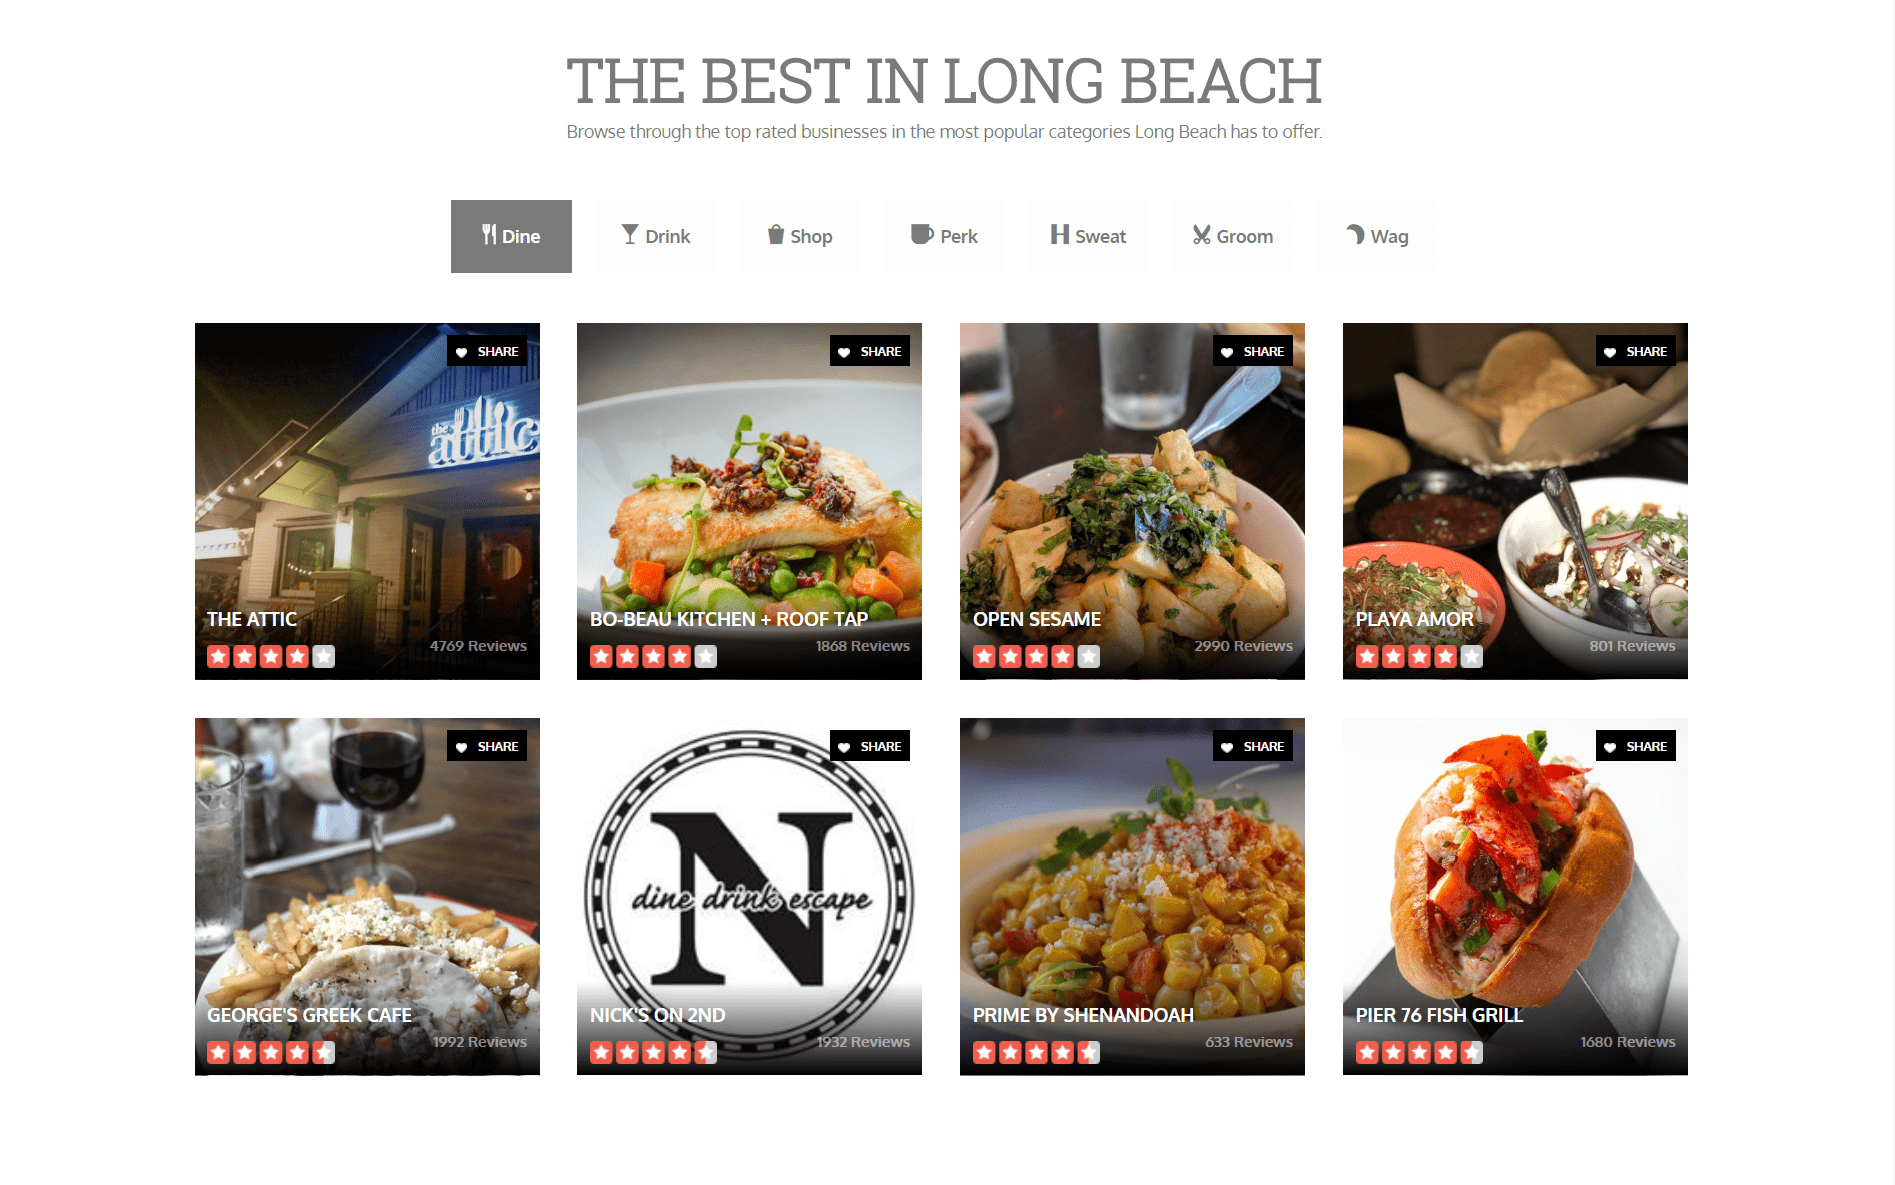 Other content area features of Neighborhood pages include localized Yelp listings.